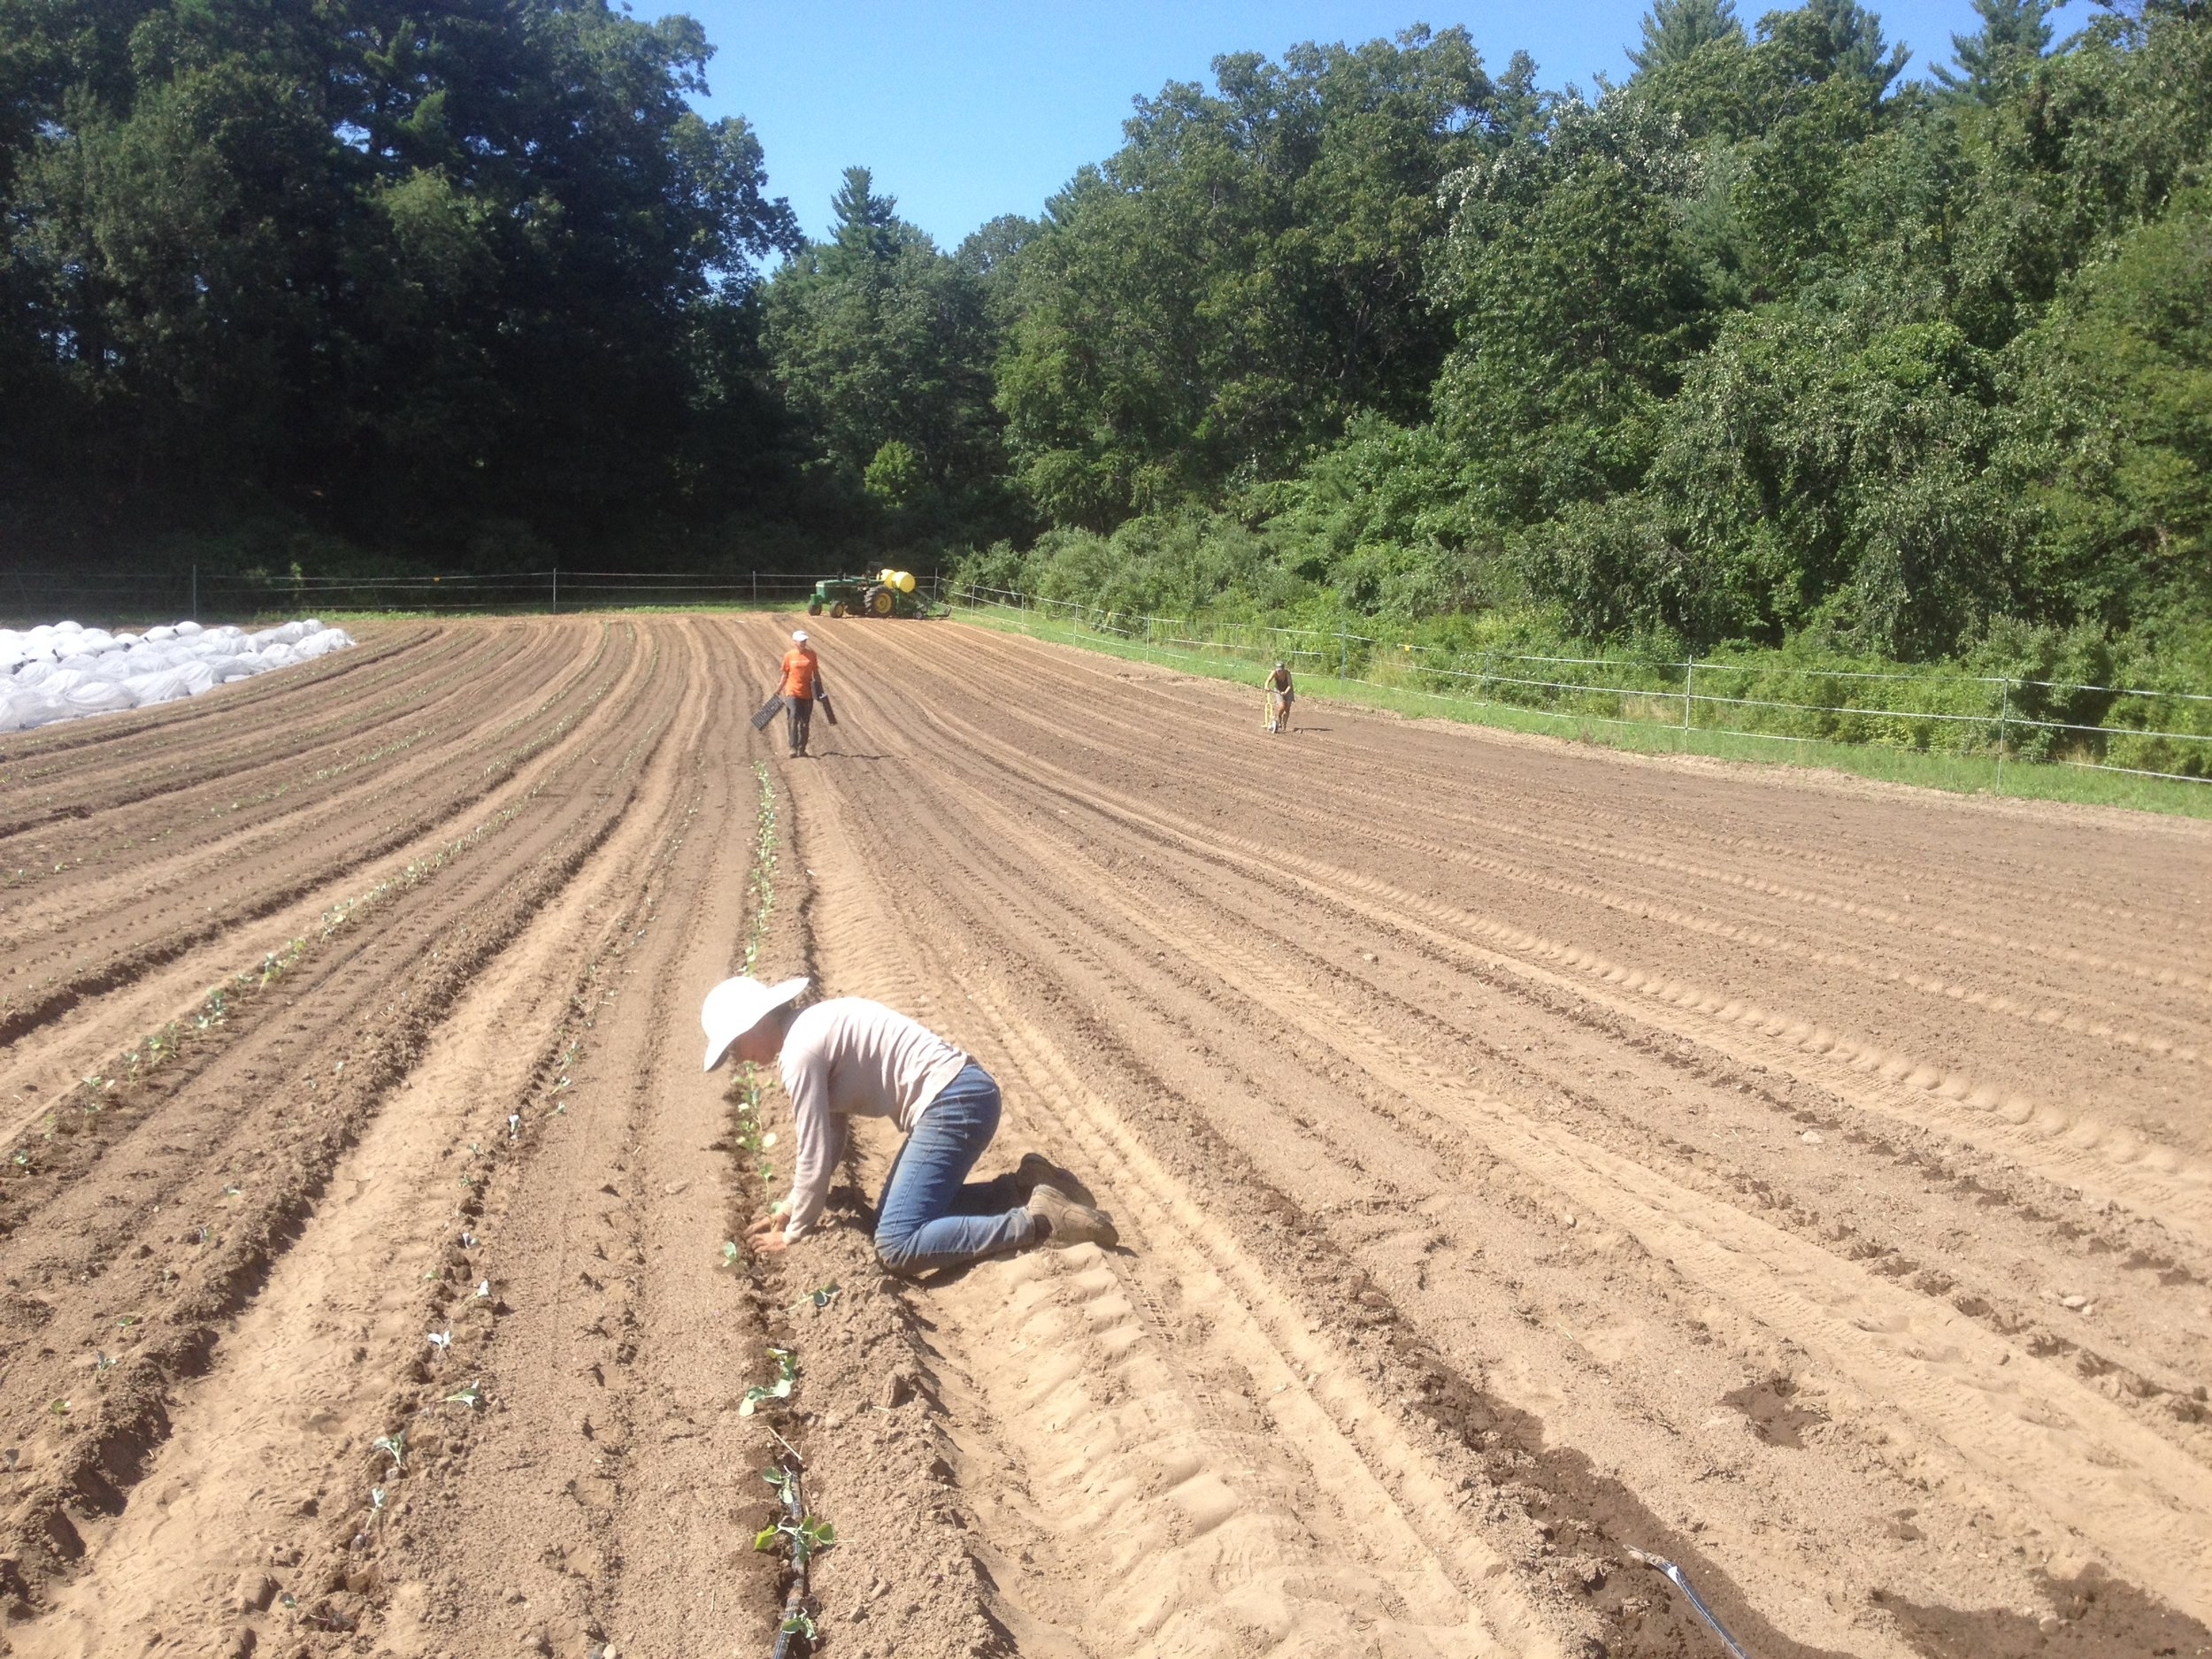 Planting fall broccoli and seeding fall carrots in our new field across the street.